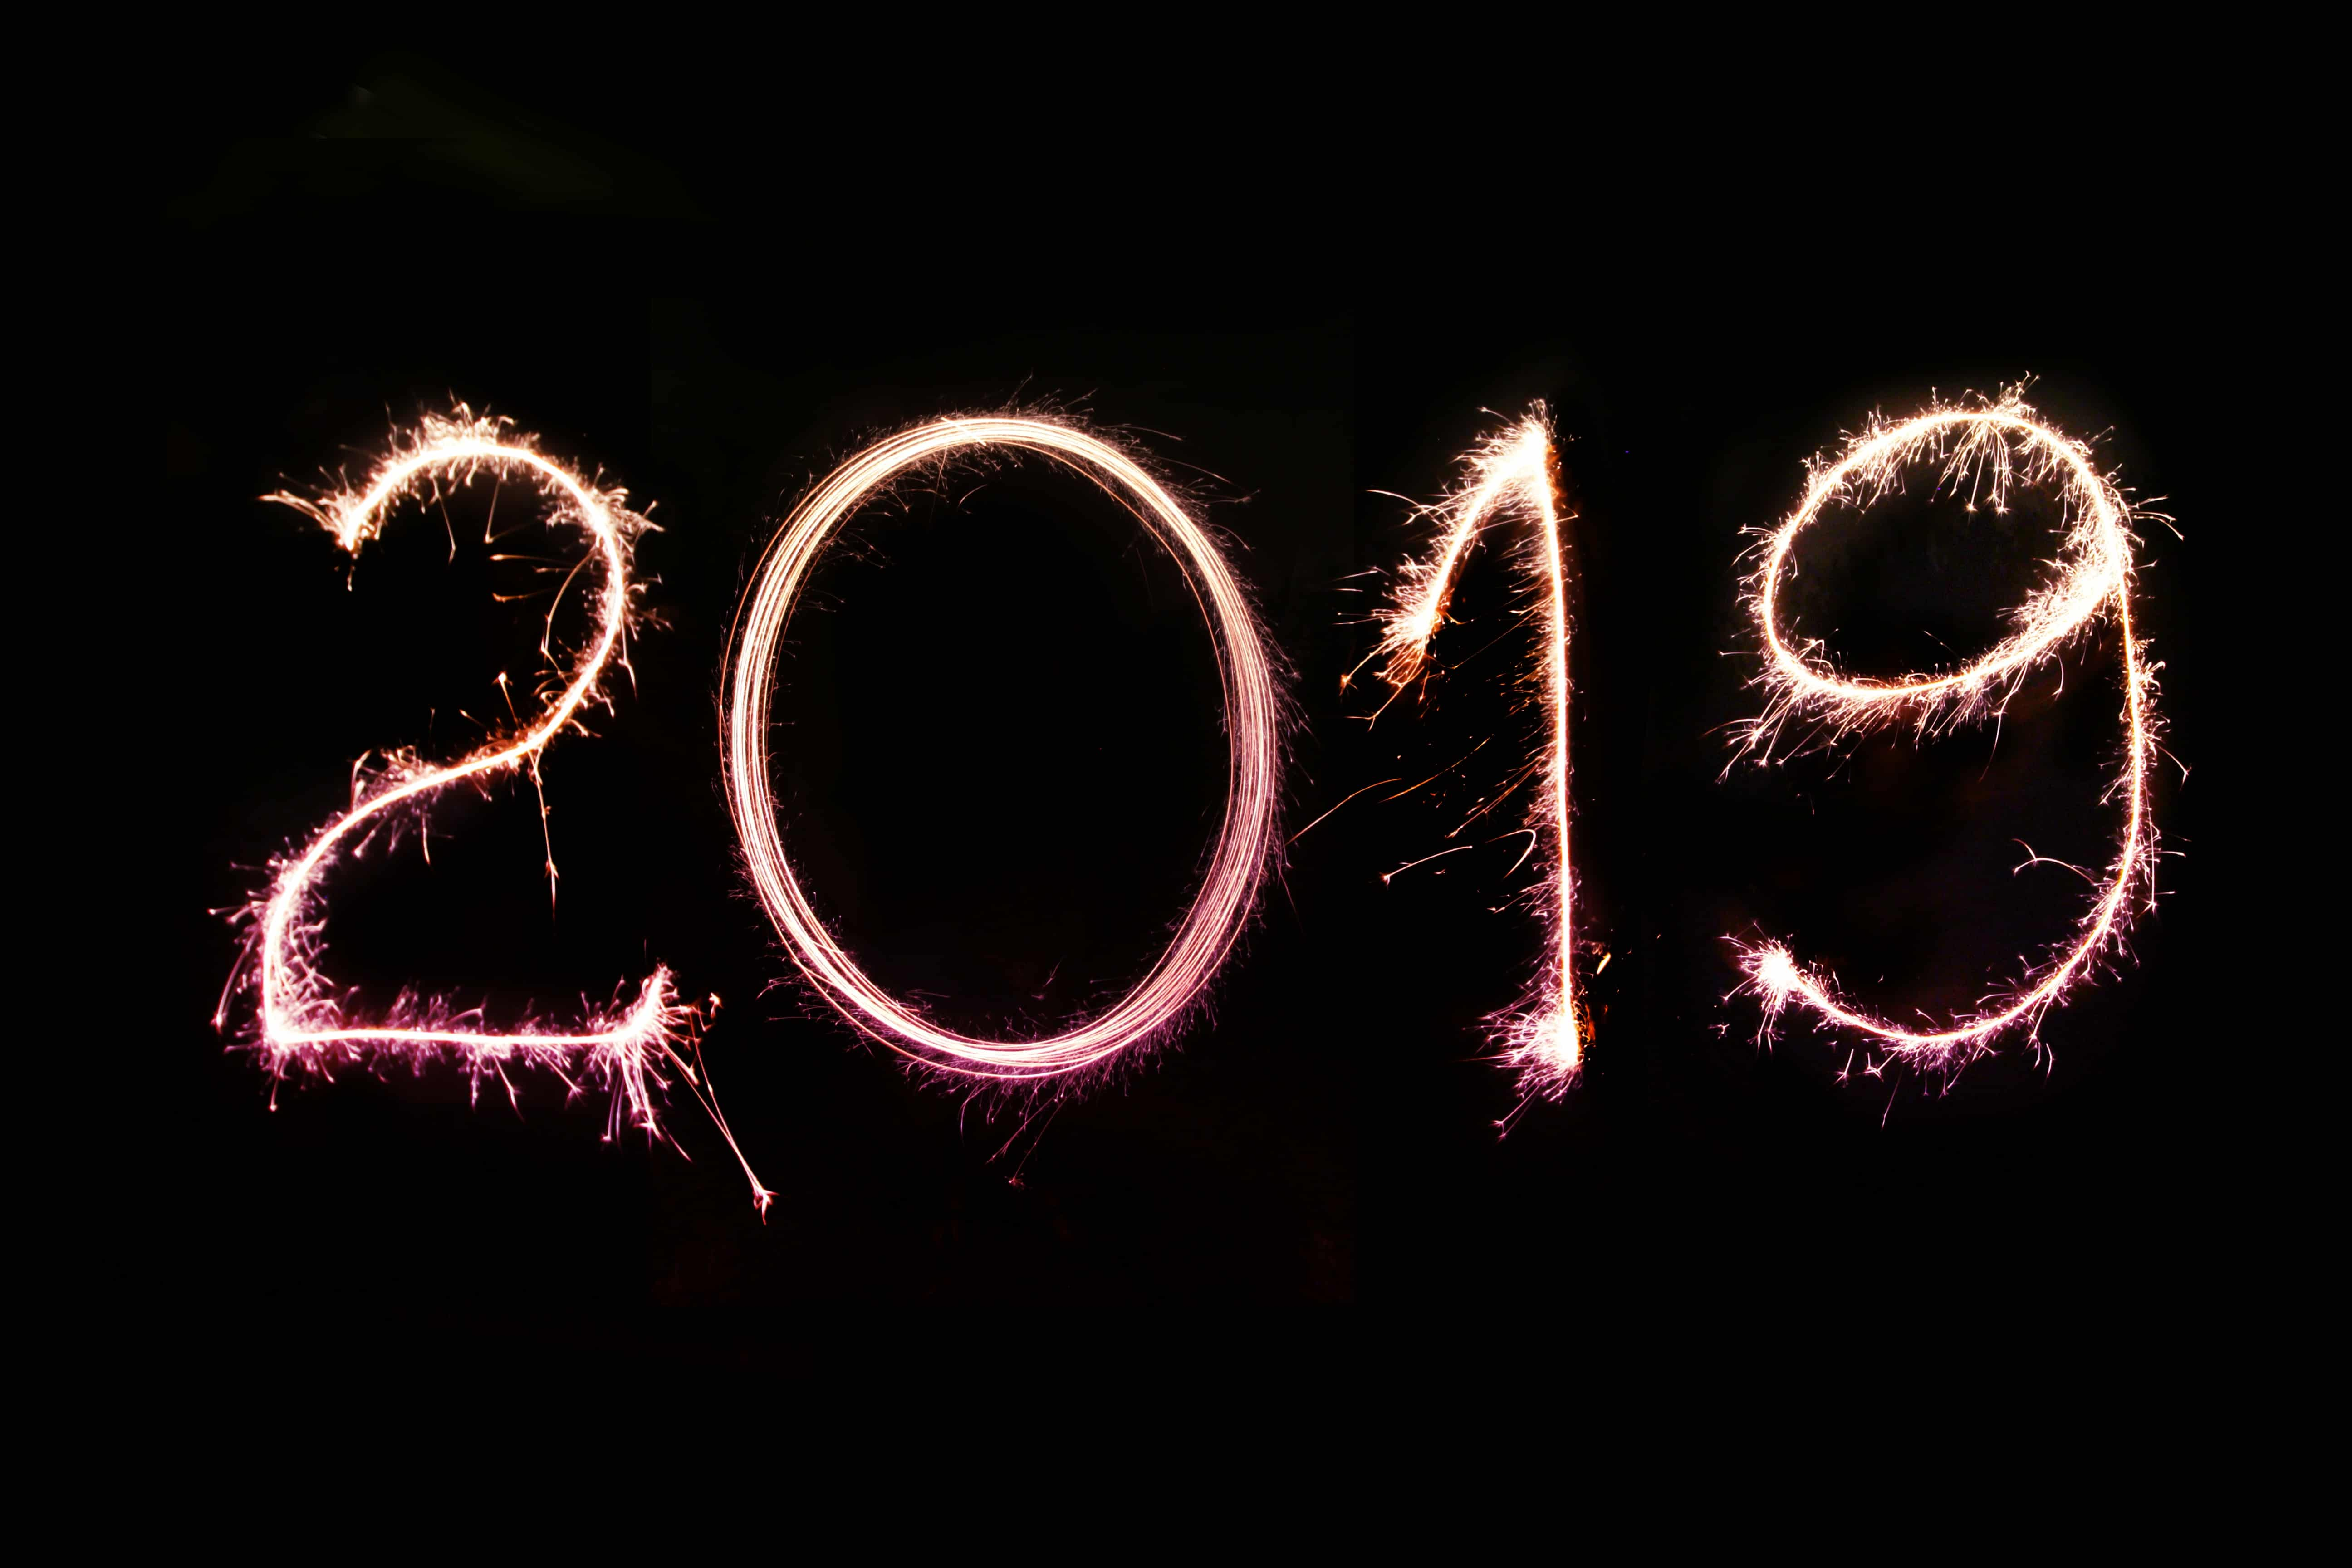 New Year's Eve 2019 in Bothell